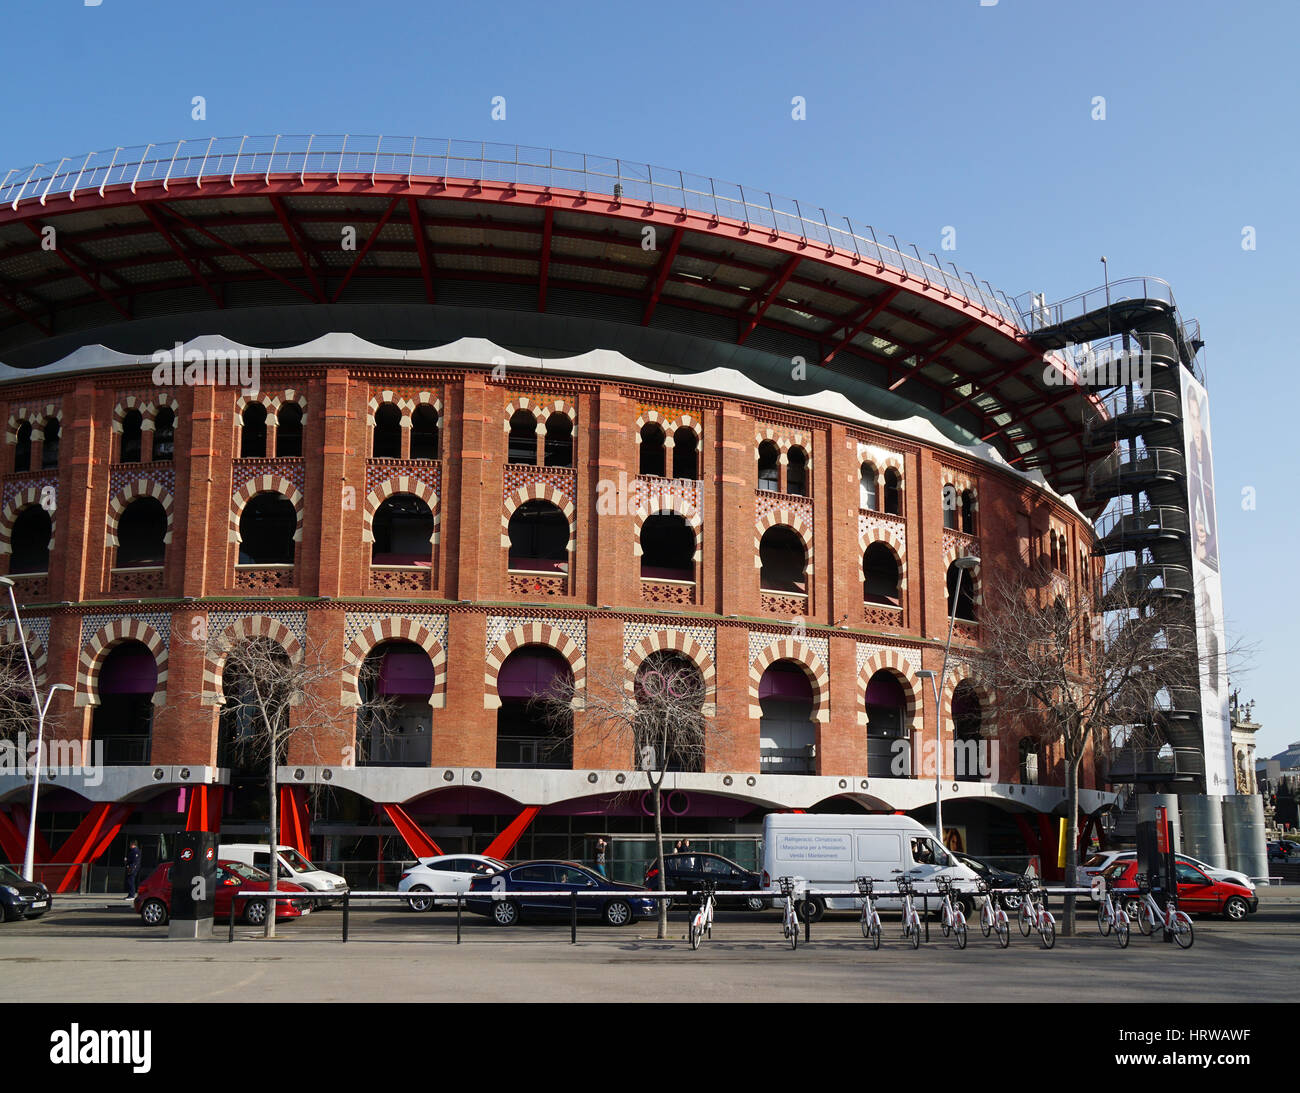 Barcelona, Spain - Feb 29, 2016: Arenas de Barcelona is a former bullring turned commercial complex at the Placa - Stock Image